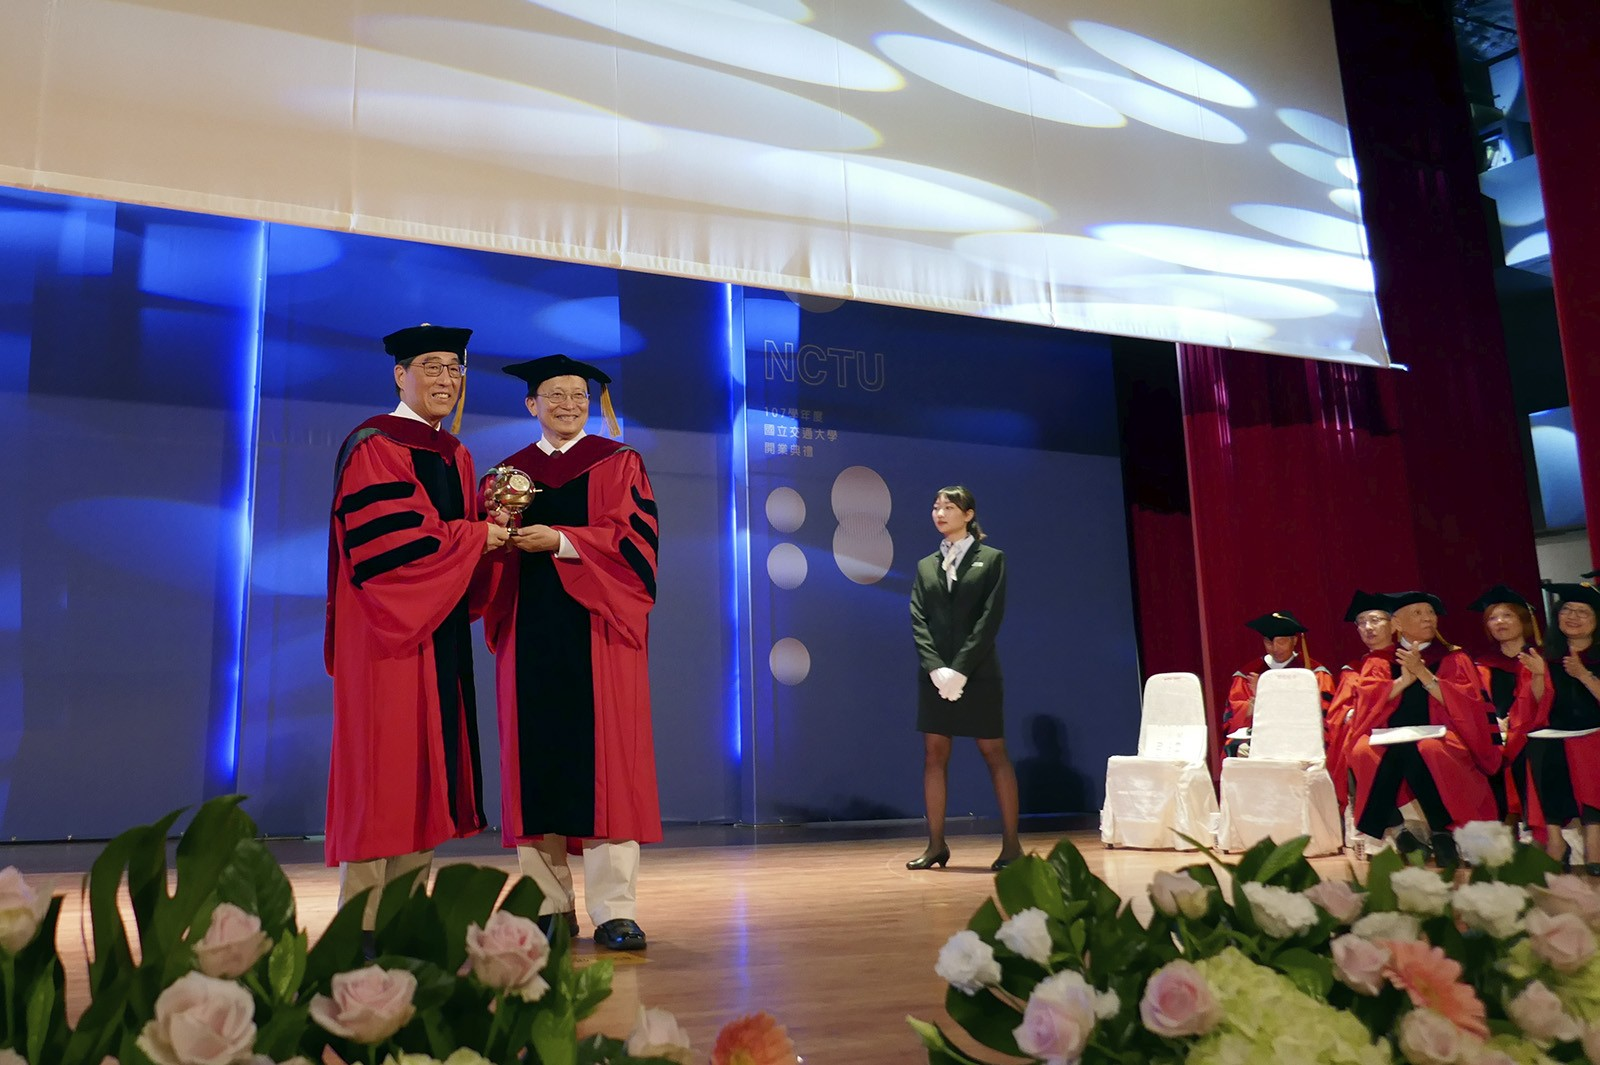 Professor Chang, President of NCTU, presents a souvenir to President Kuo (first on left).